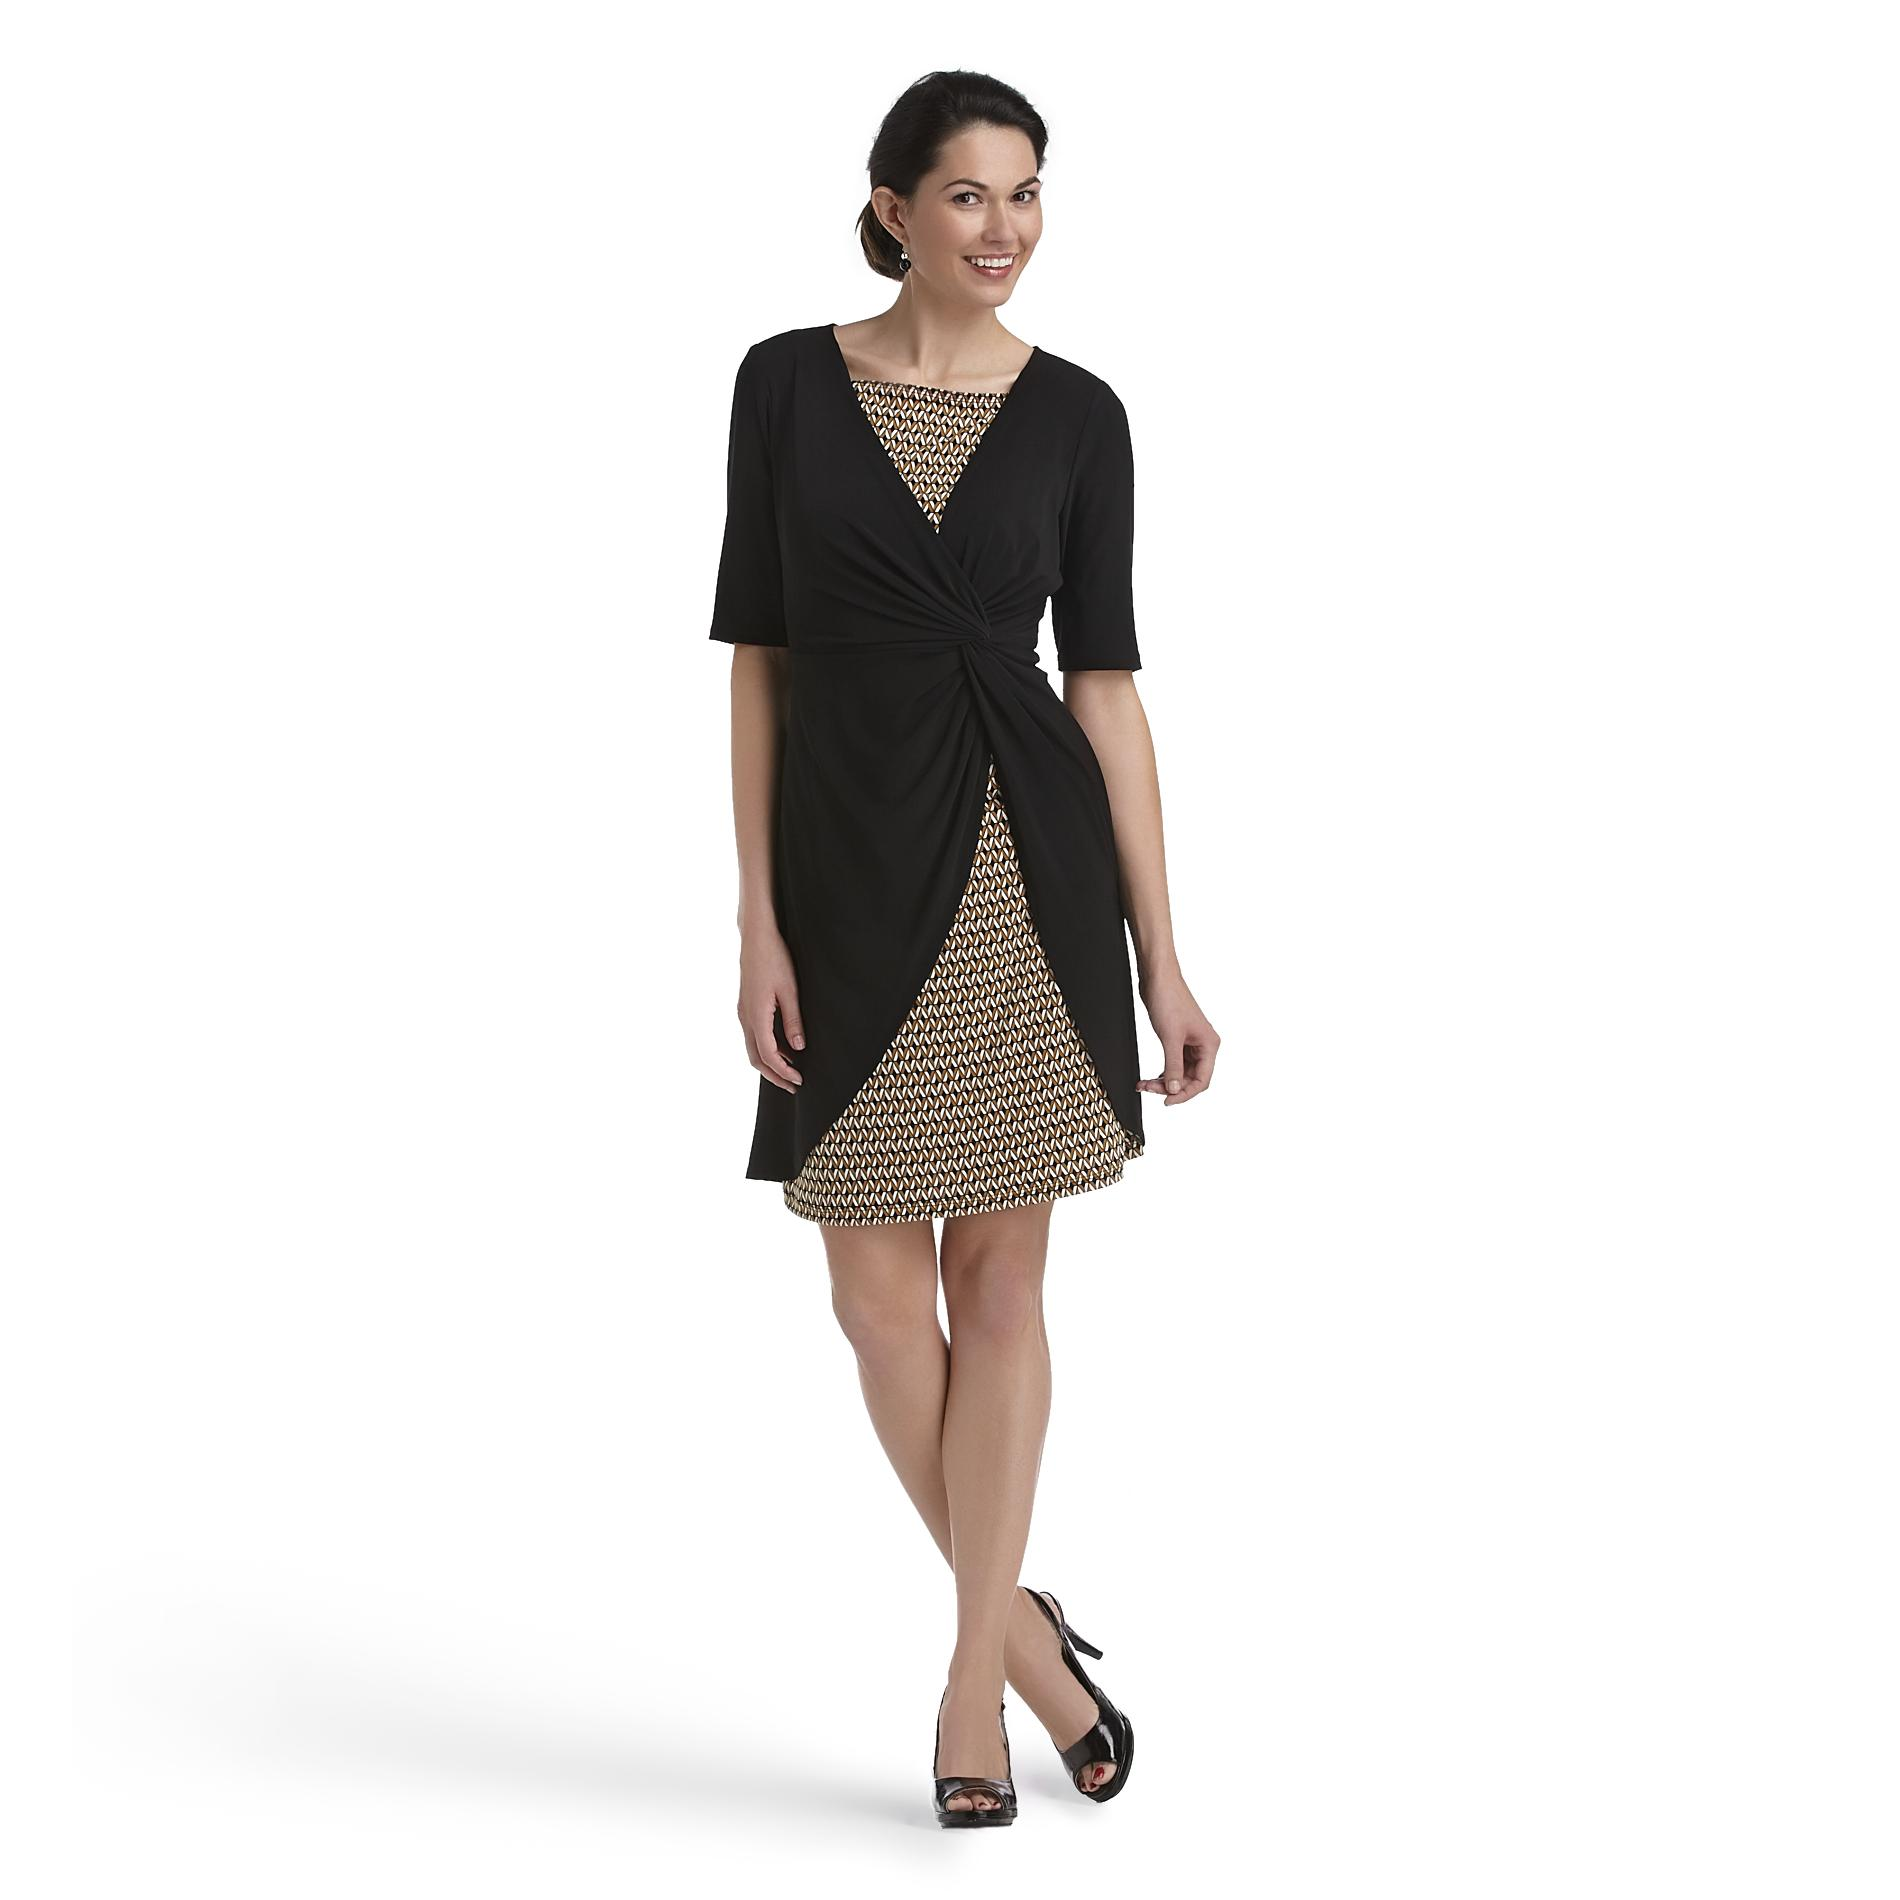 Women's Knit Dress - Geometric